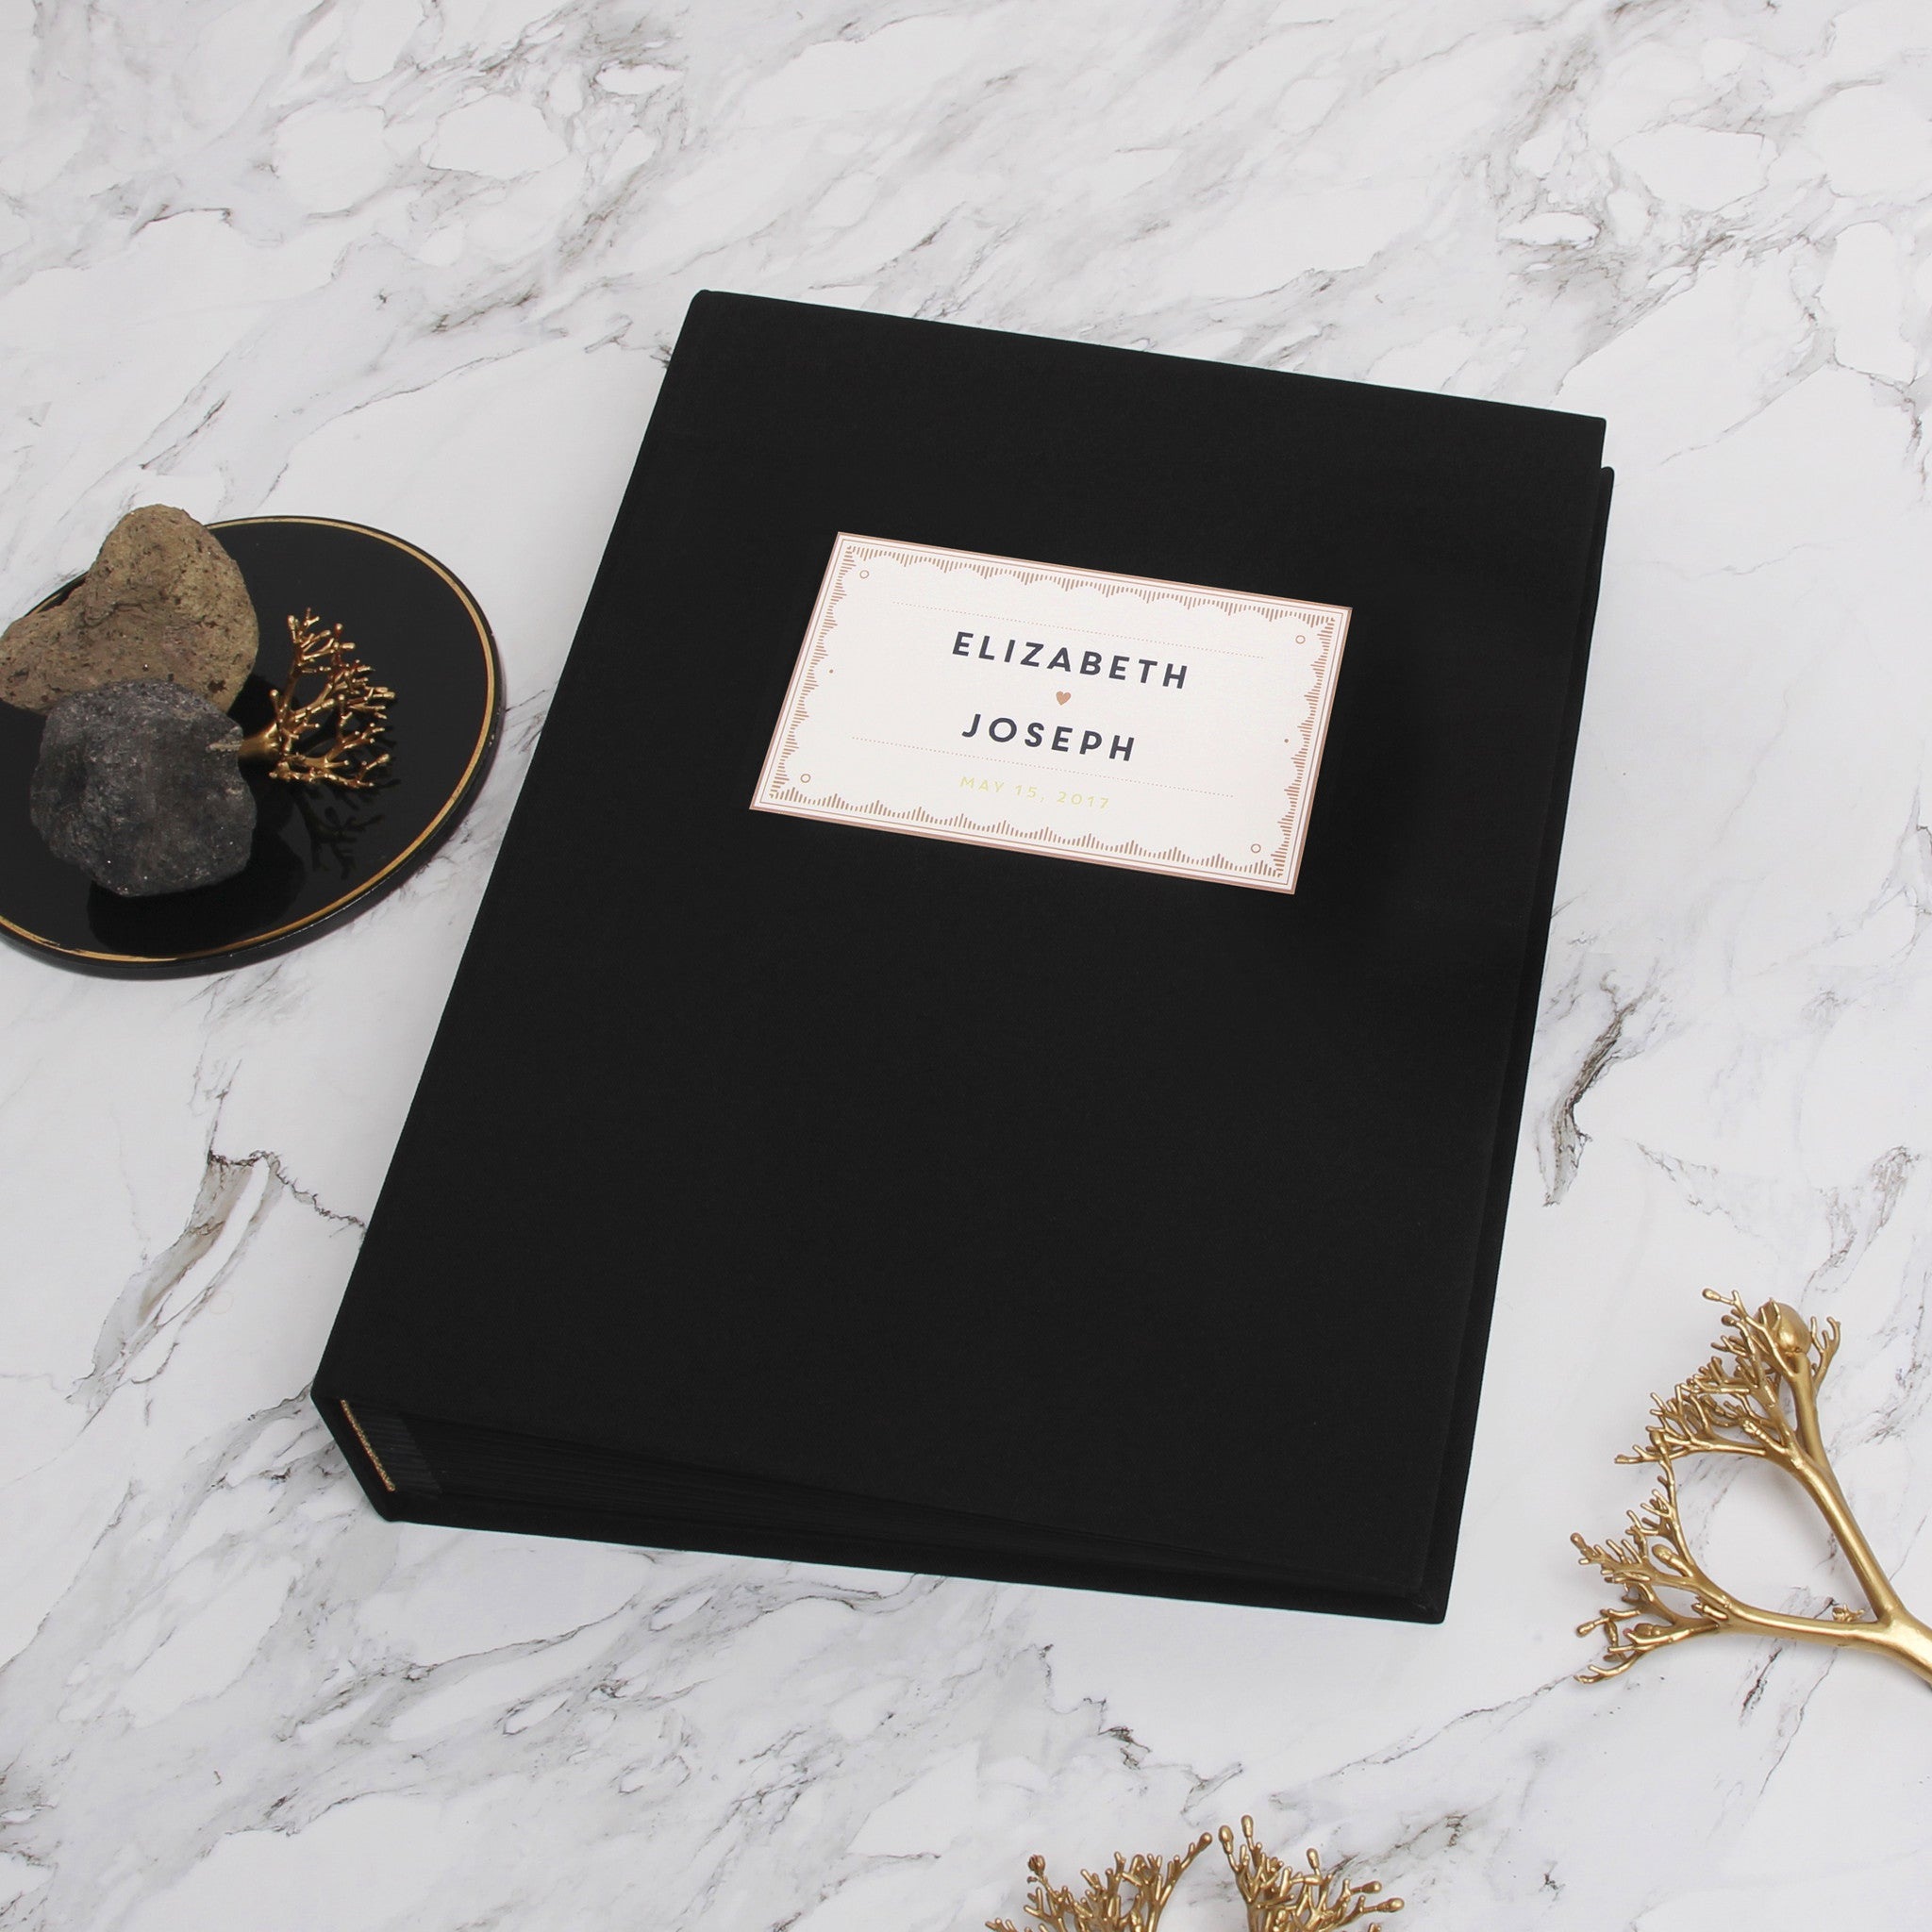 Photo Booth Wedding Guest Book Album Black with Paper Label